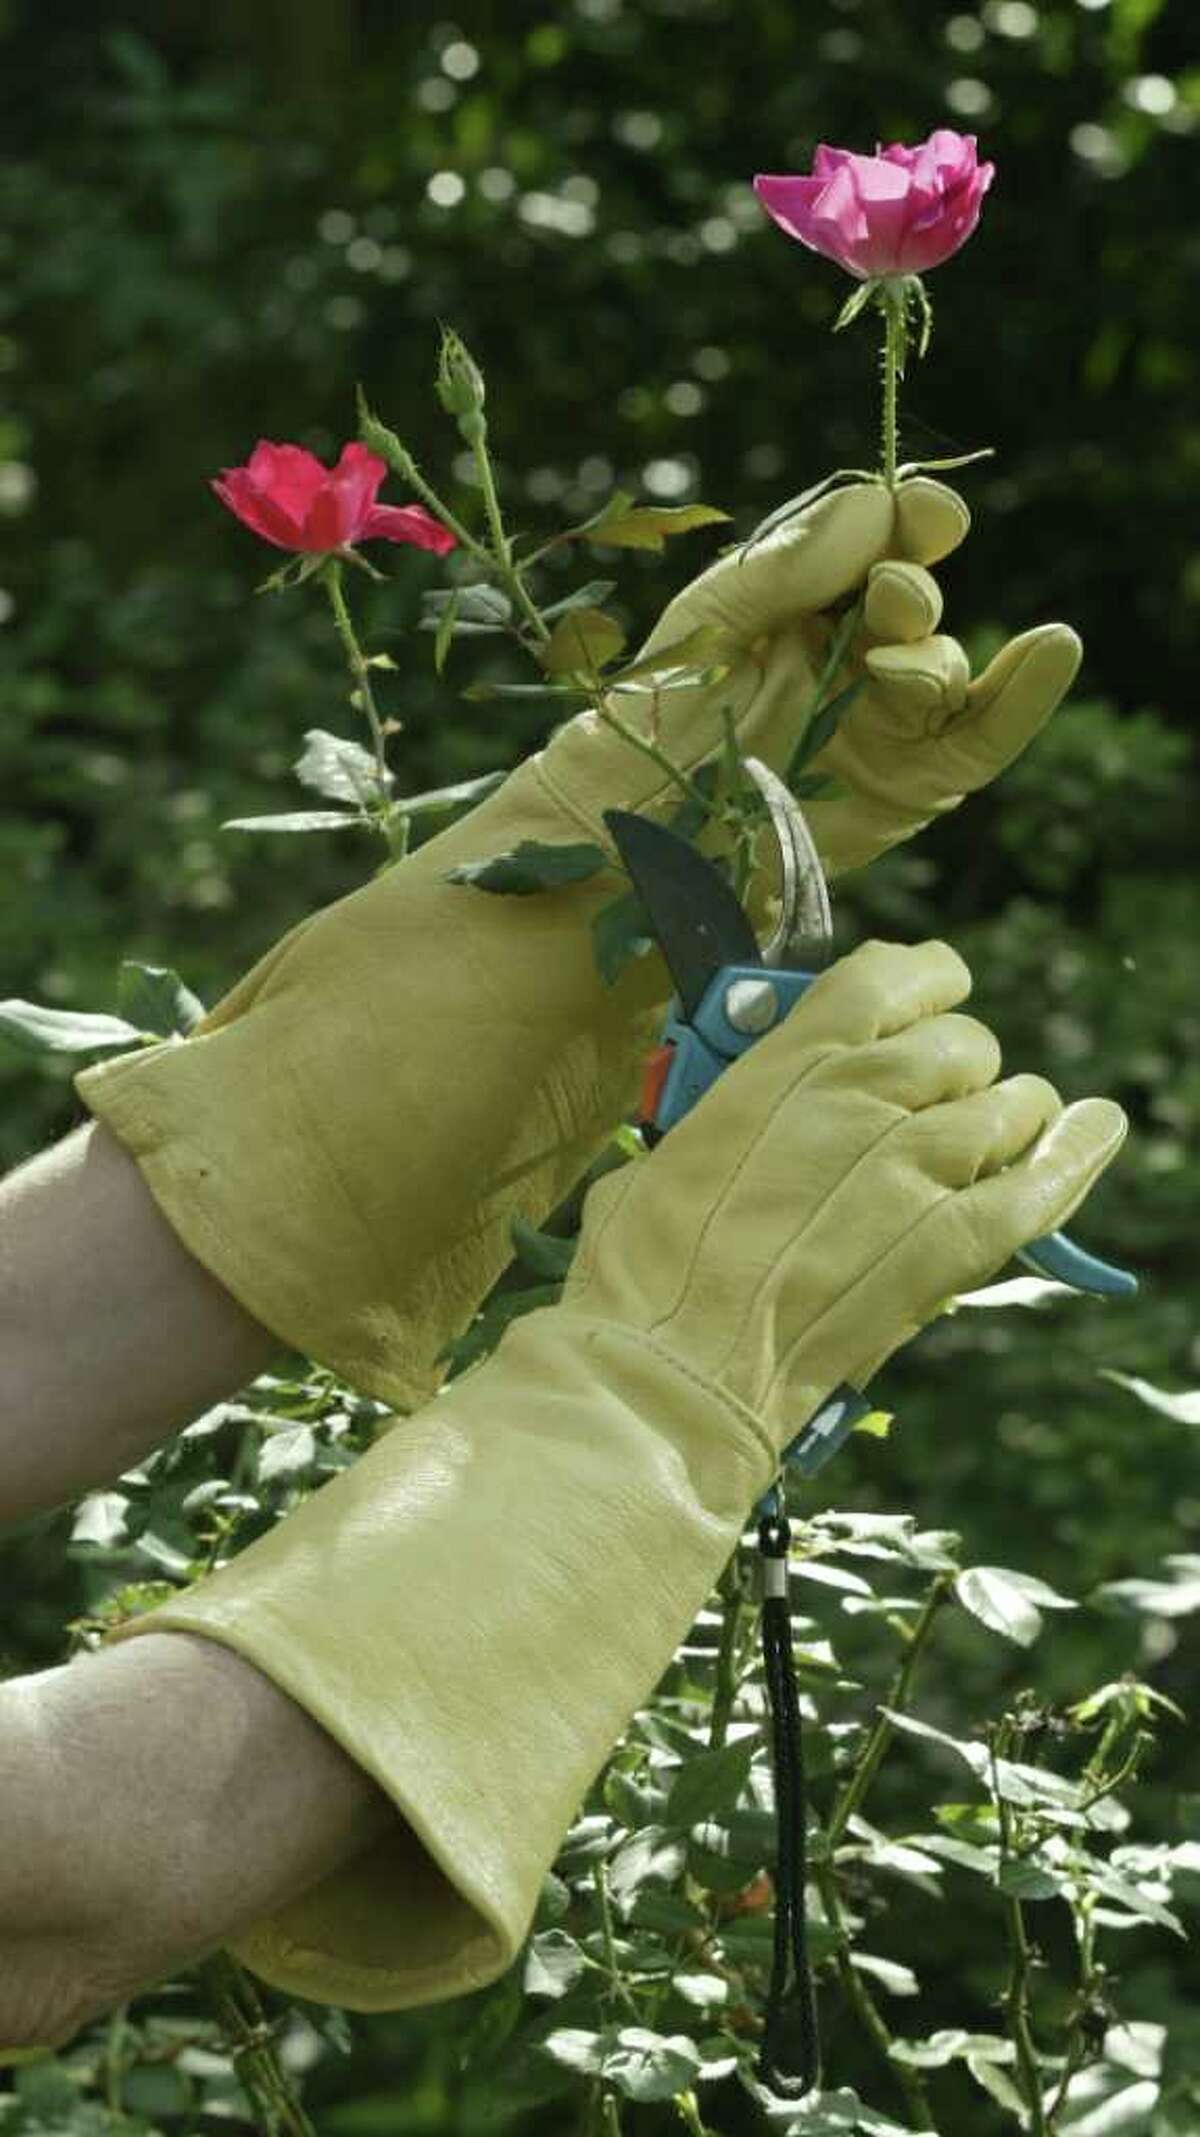 Garden gloves protect the hand from sharp prickles when pruning.